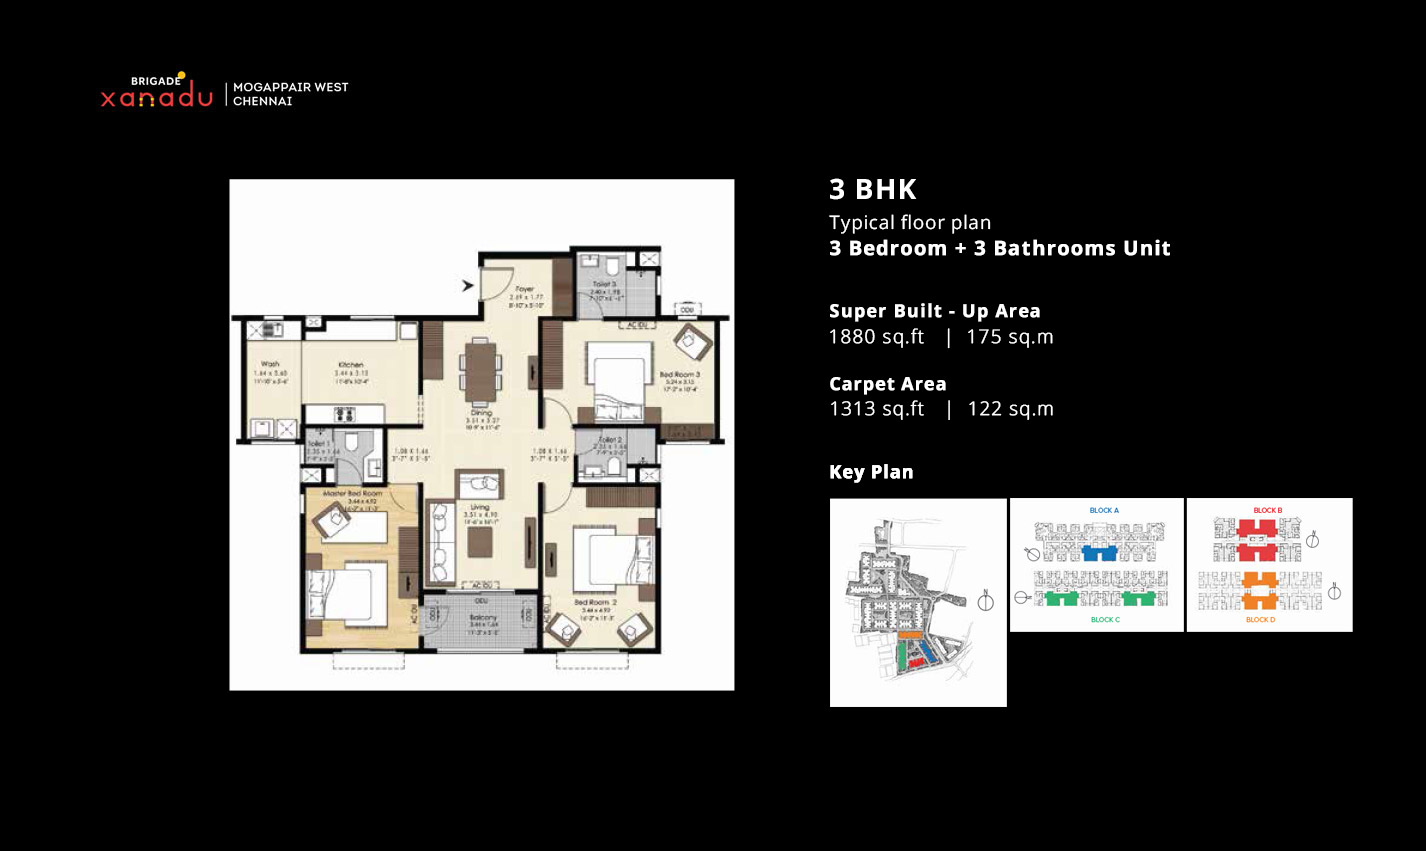 typical-floor-plan-brigade-xanadu-apartments